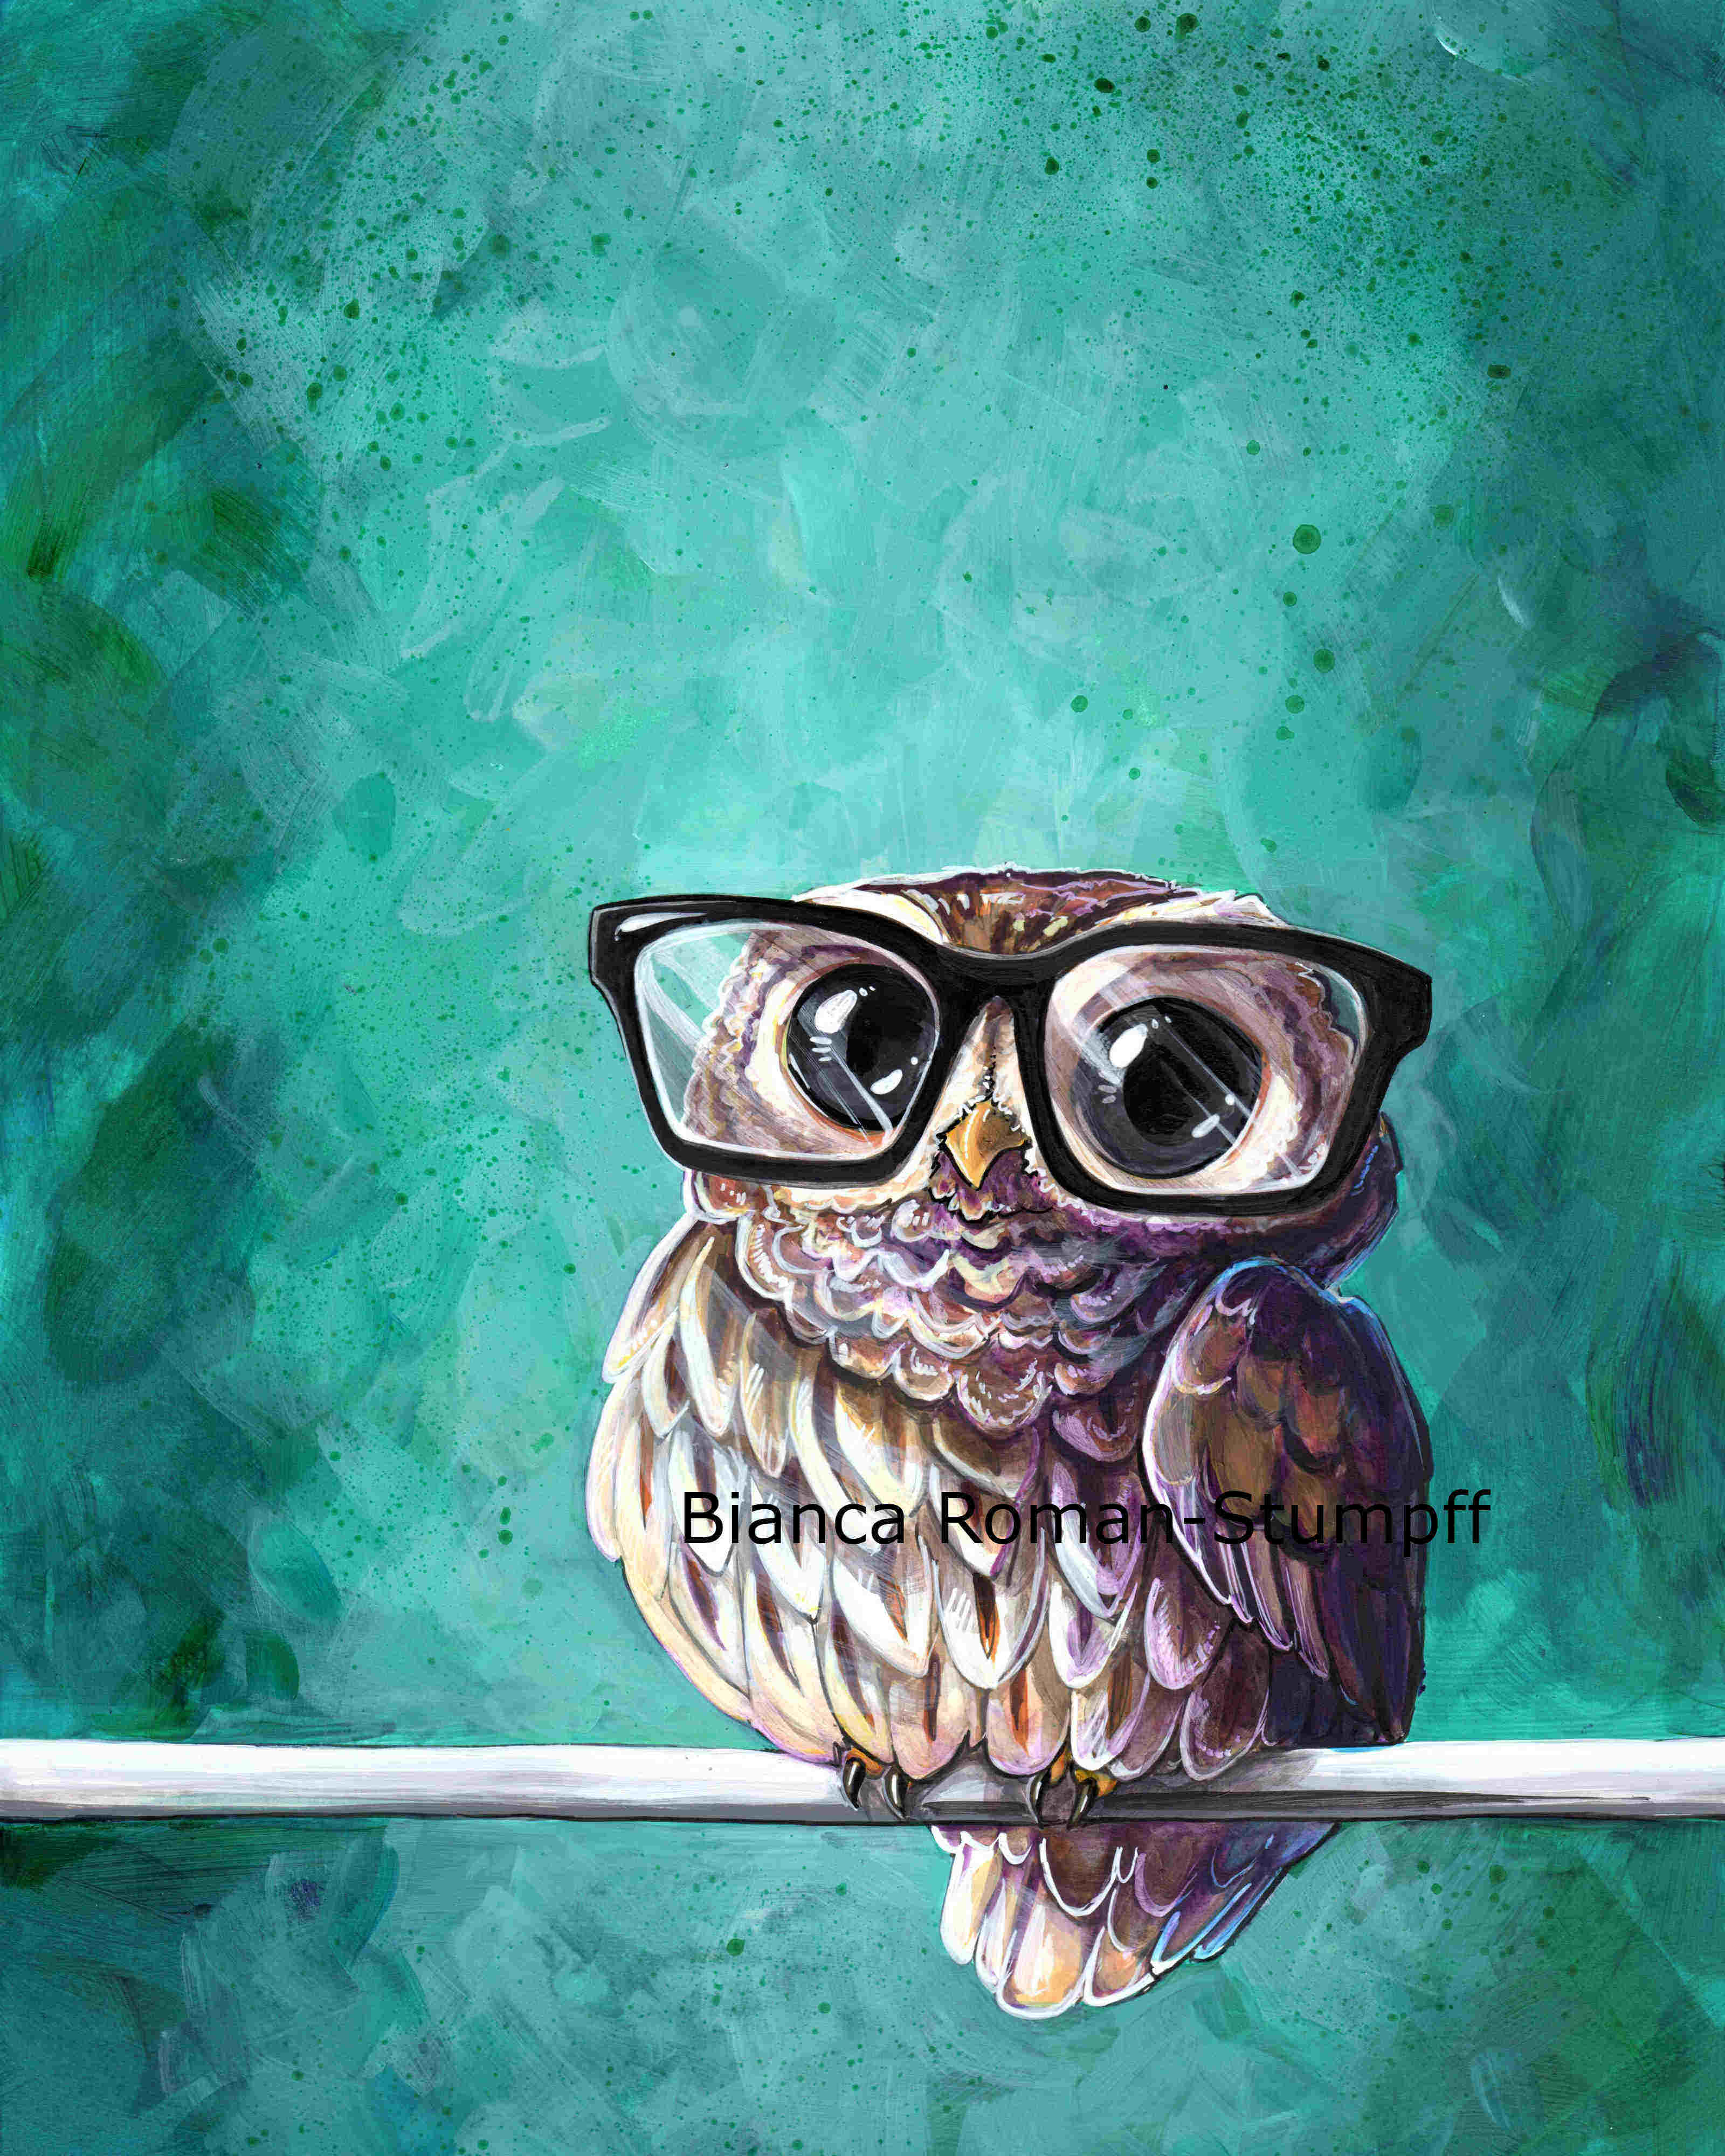 Intellectual Owl Print Art Of Bianca Roman Stumpff